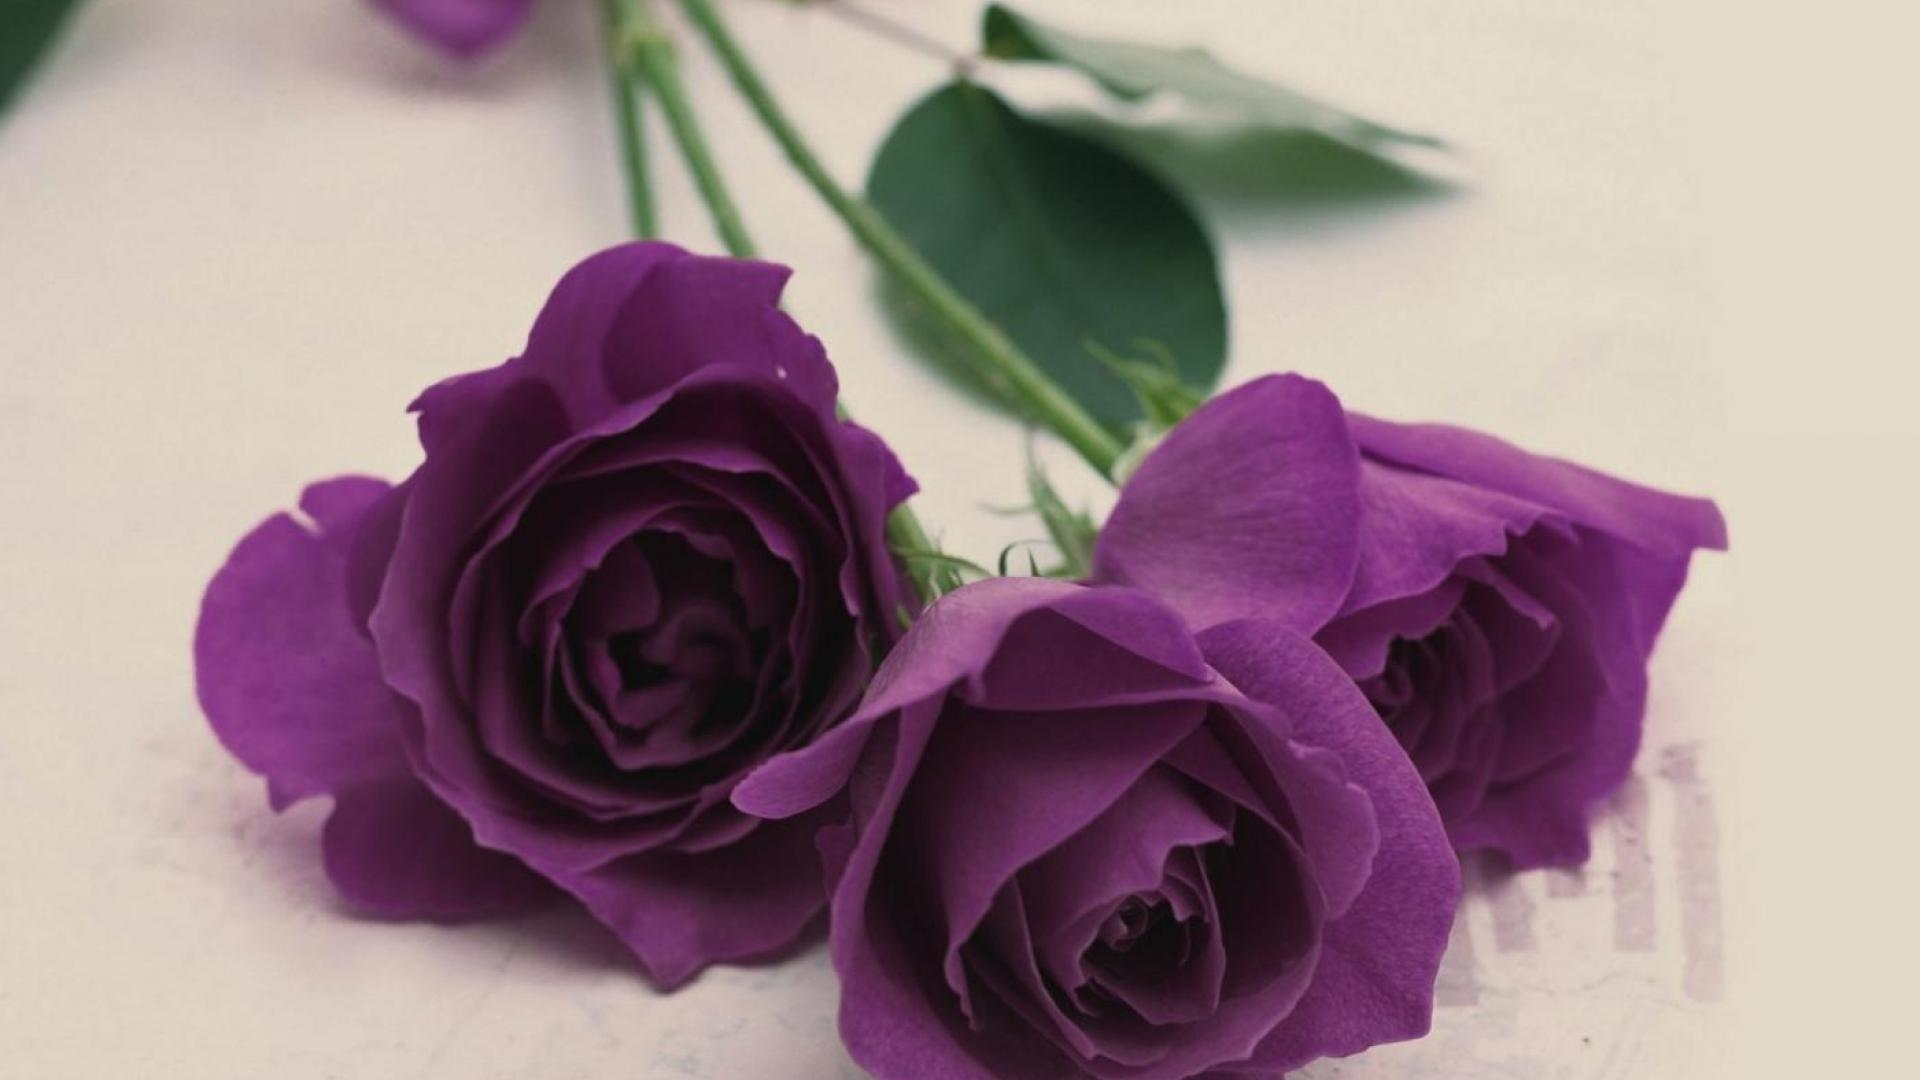 Purple rose wallpapers images photos pictures backgrounds for Purple rose pictures